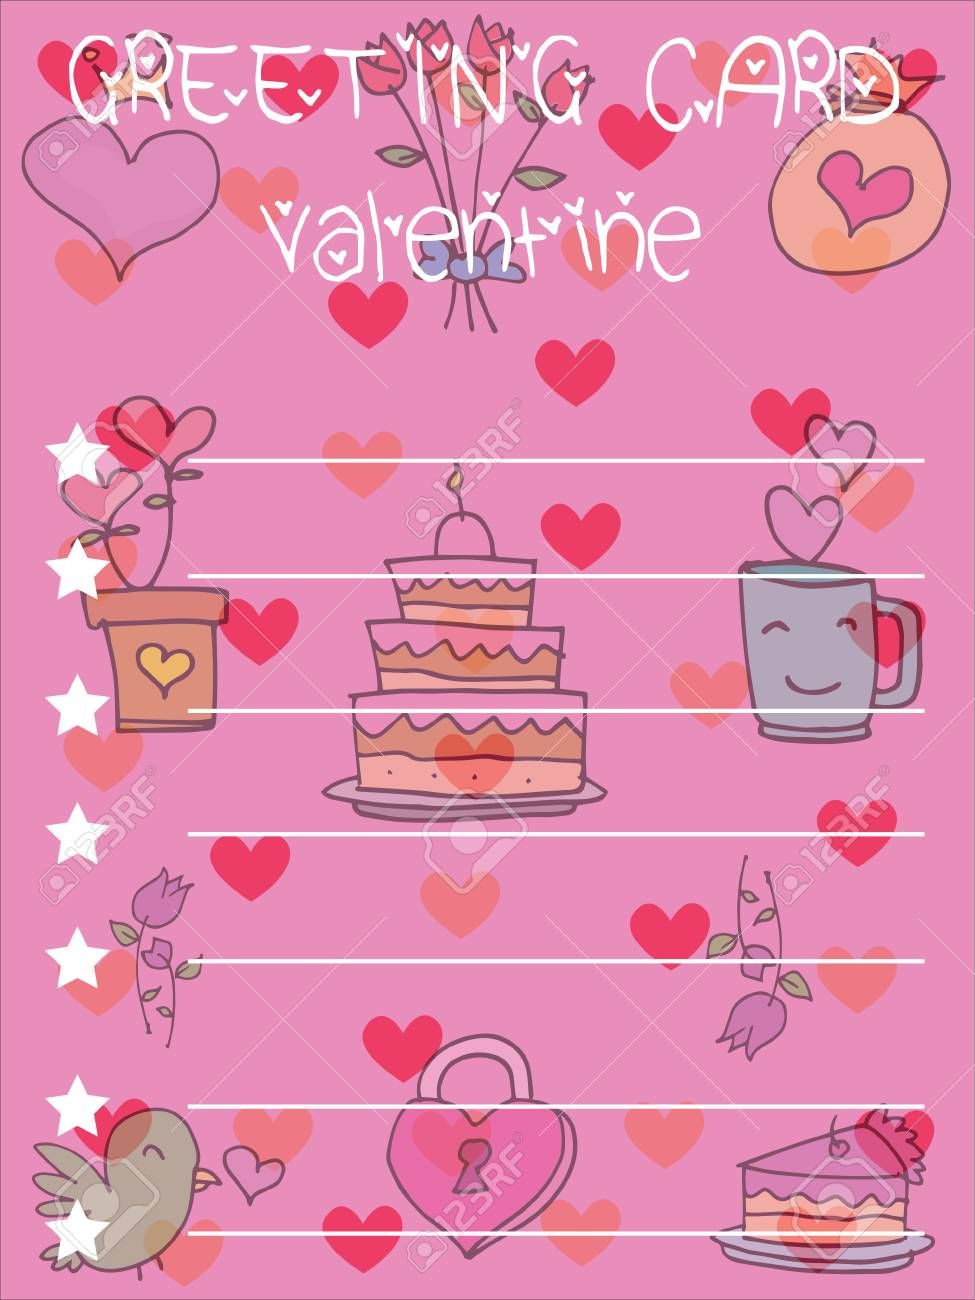 Illustration Valentine Greeting Card Backgrounds Vector Art Royalty